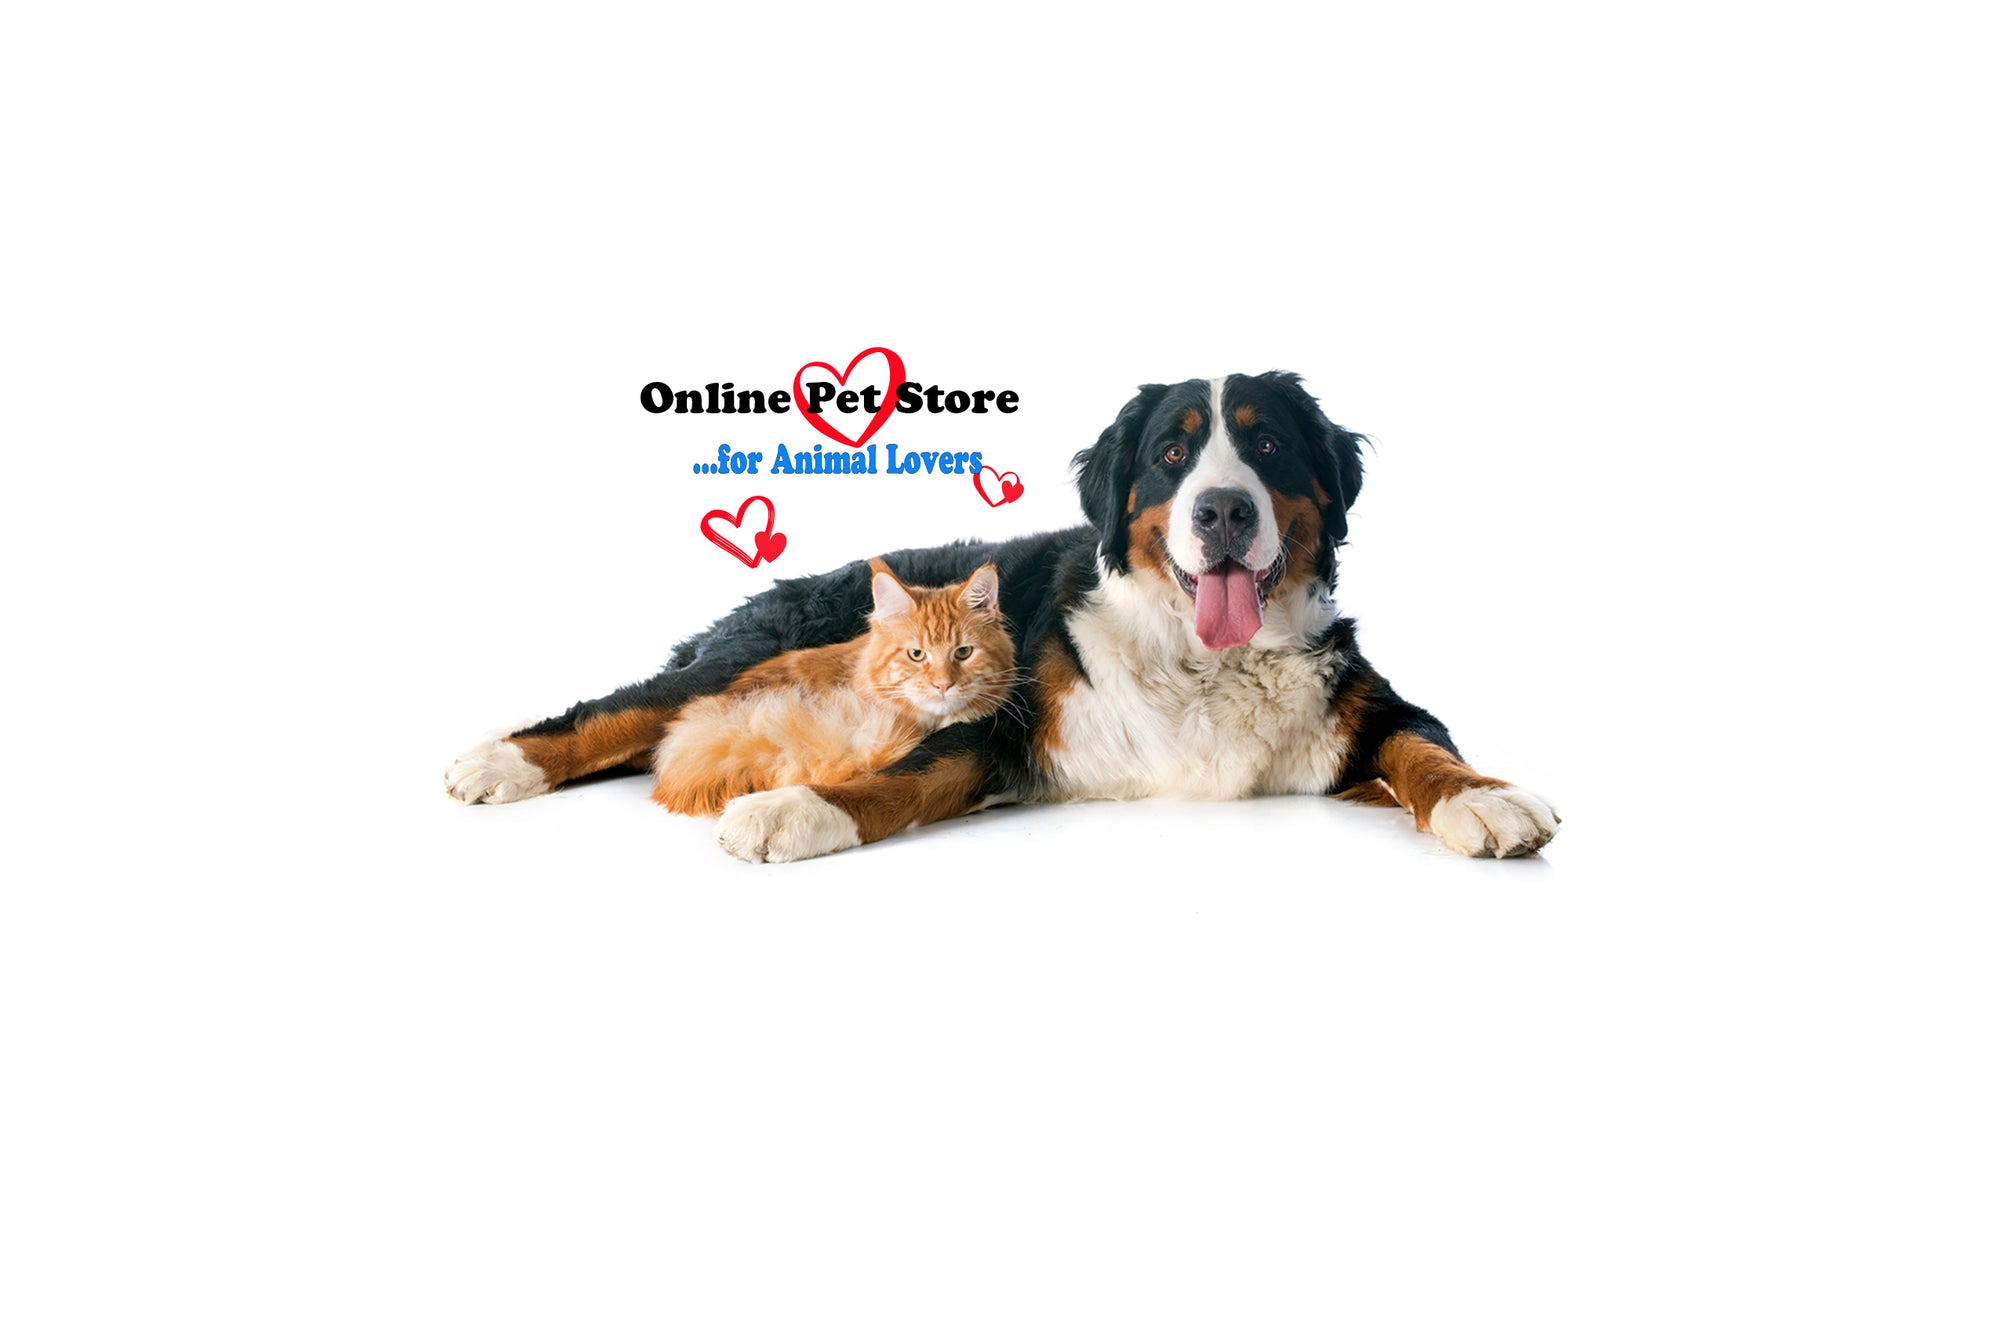 WP - Photo of a Bernese Mountain dog and an orange cat - Wear Pet - HomePage photo - Online Pet Store for Pet Parents and Animals Lovers - with some drawings of hearts over the two animals